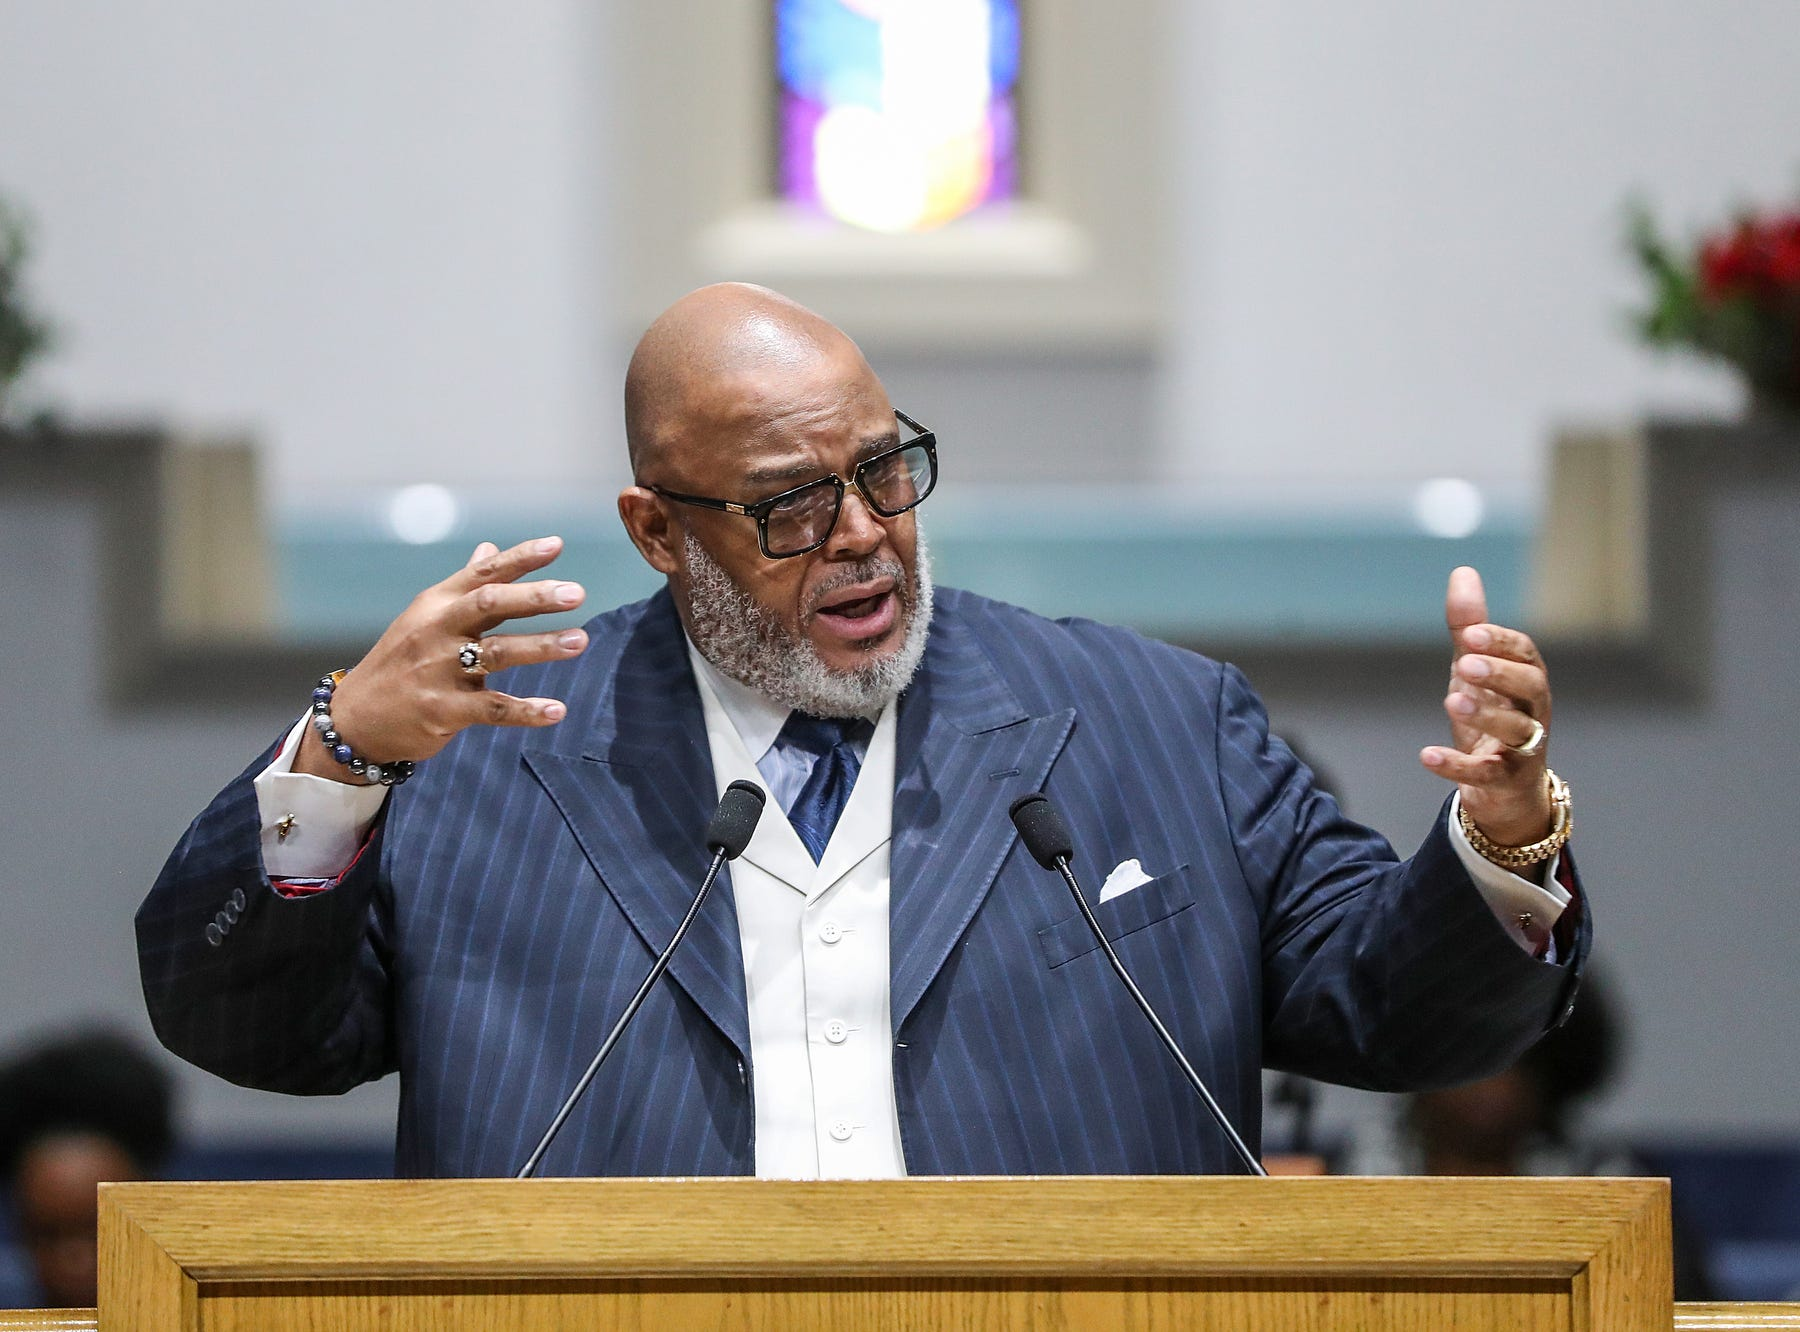 Rev. Dr. Wayne Moore delivers a sermon during a service celebrating the anniversary of the Emancipation Proclamation and honoring local leaders, at Olivet Missionary Baptist Church in Indianapolis, Tuesday, Jan. 1, 2019.